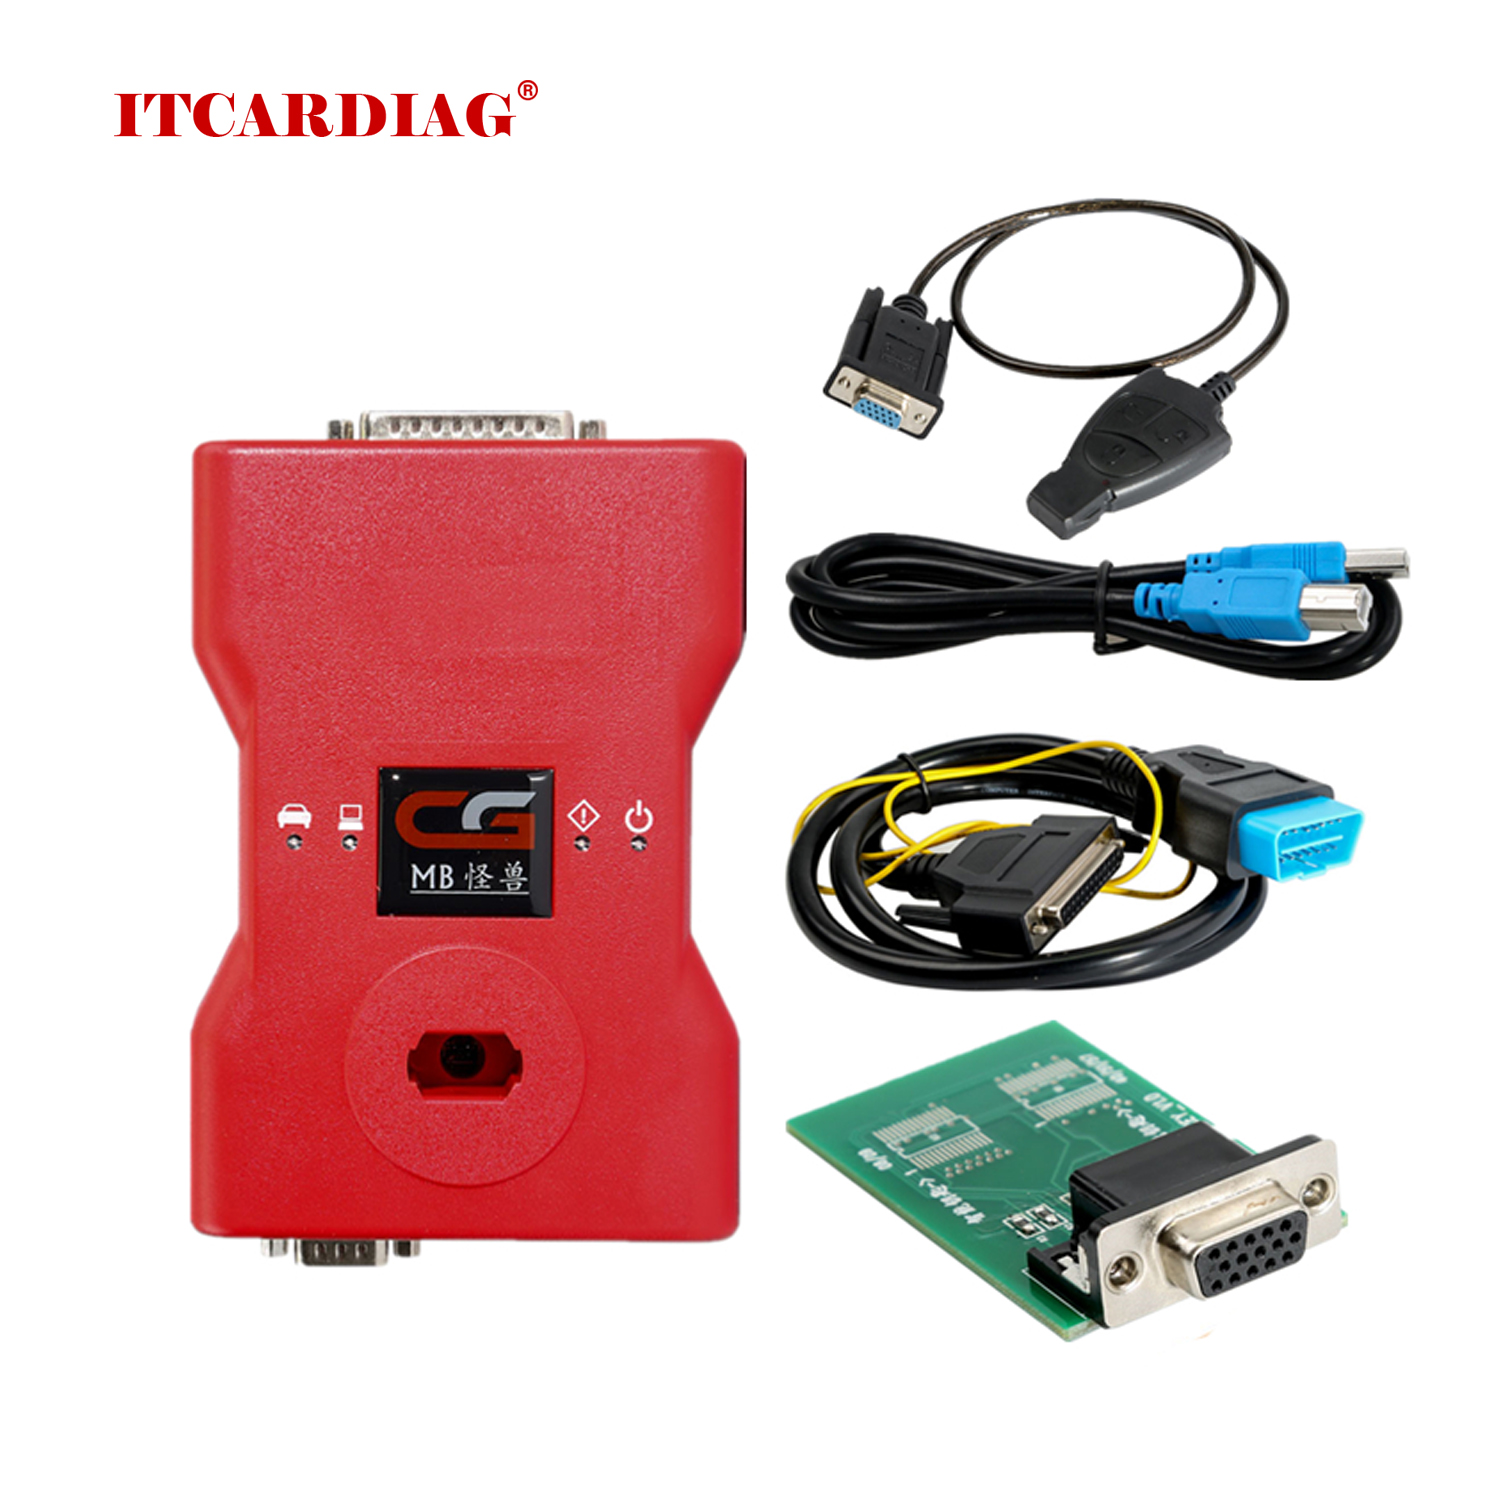 CGDI <font><b>MB</b></font> <font><b>Key</b></font> <font><b>Programmer</b></font> with AC Adapter Work with Mercedes Benz W164 W204 W221 W209 W246 W251 W166 for Data Acquisition via OBD image